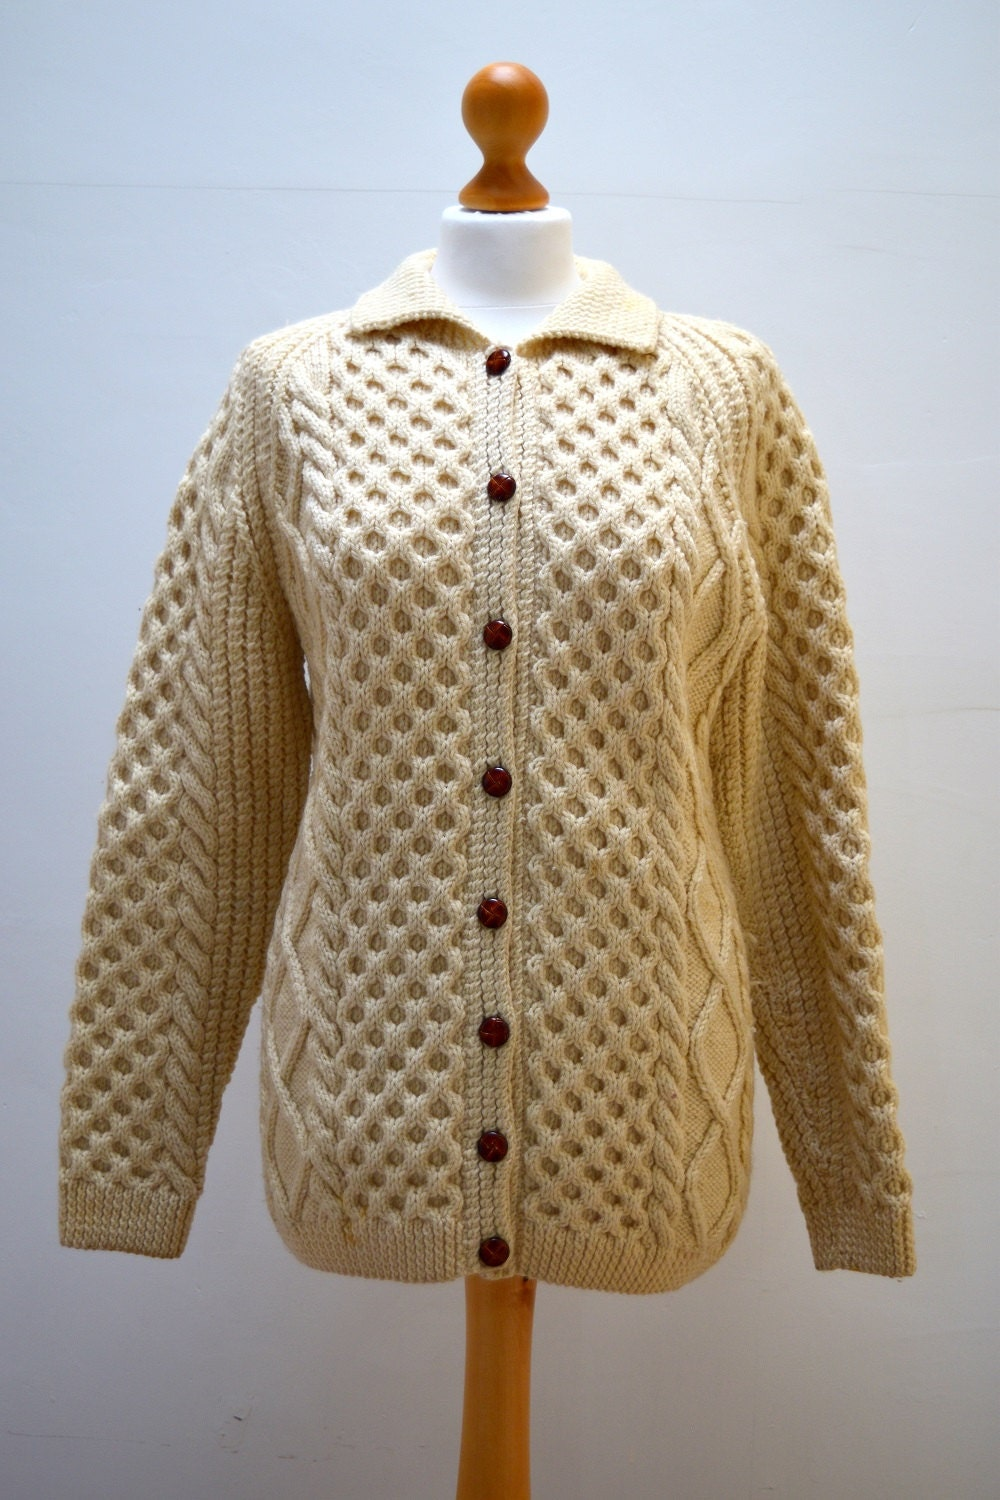 Vintage 1980s Cream Cable Knit Button-Up Cardigan Sweater